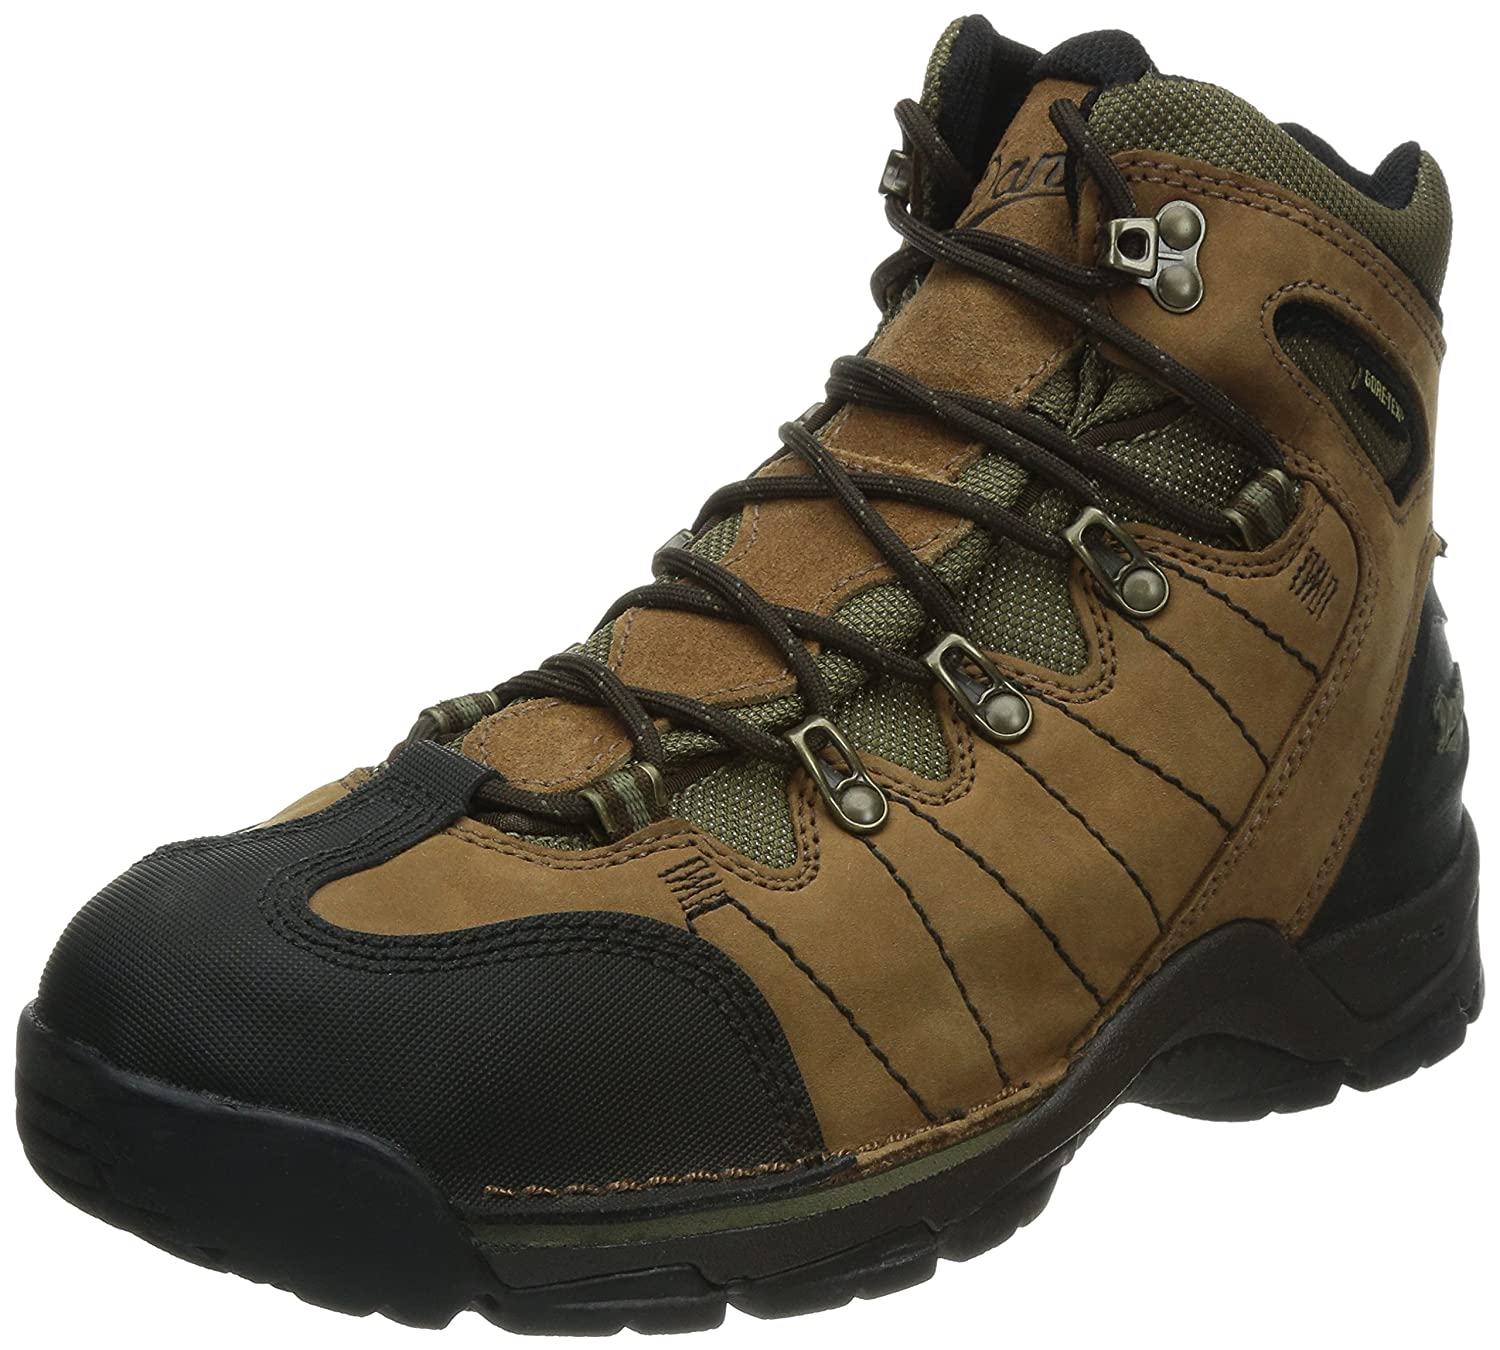 Women's Zig Zag Trail Brown Hiking Boots 51